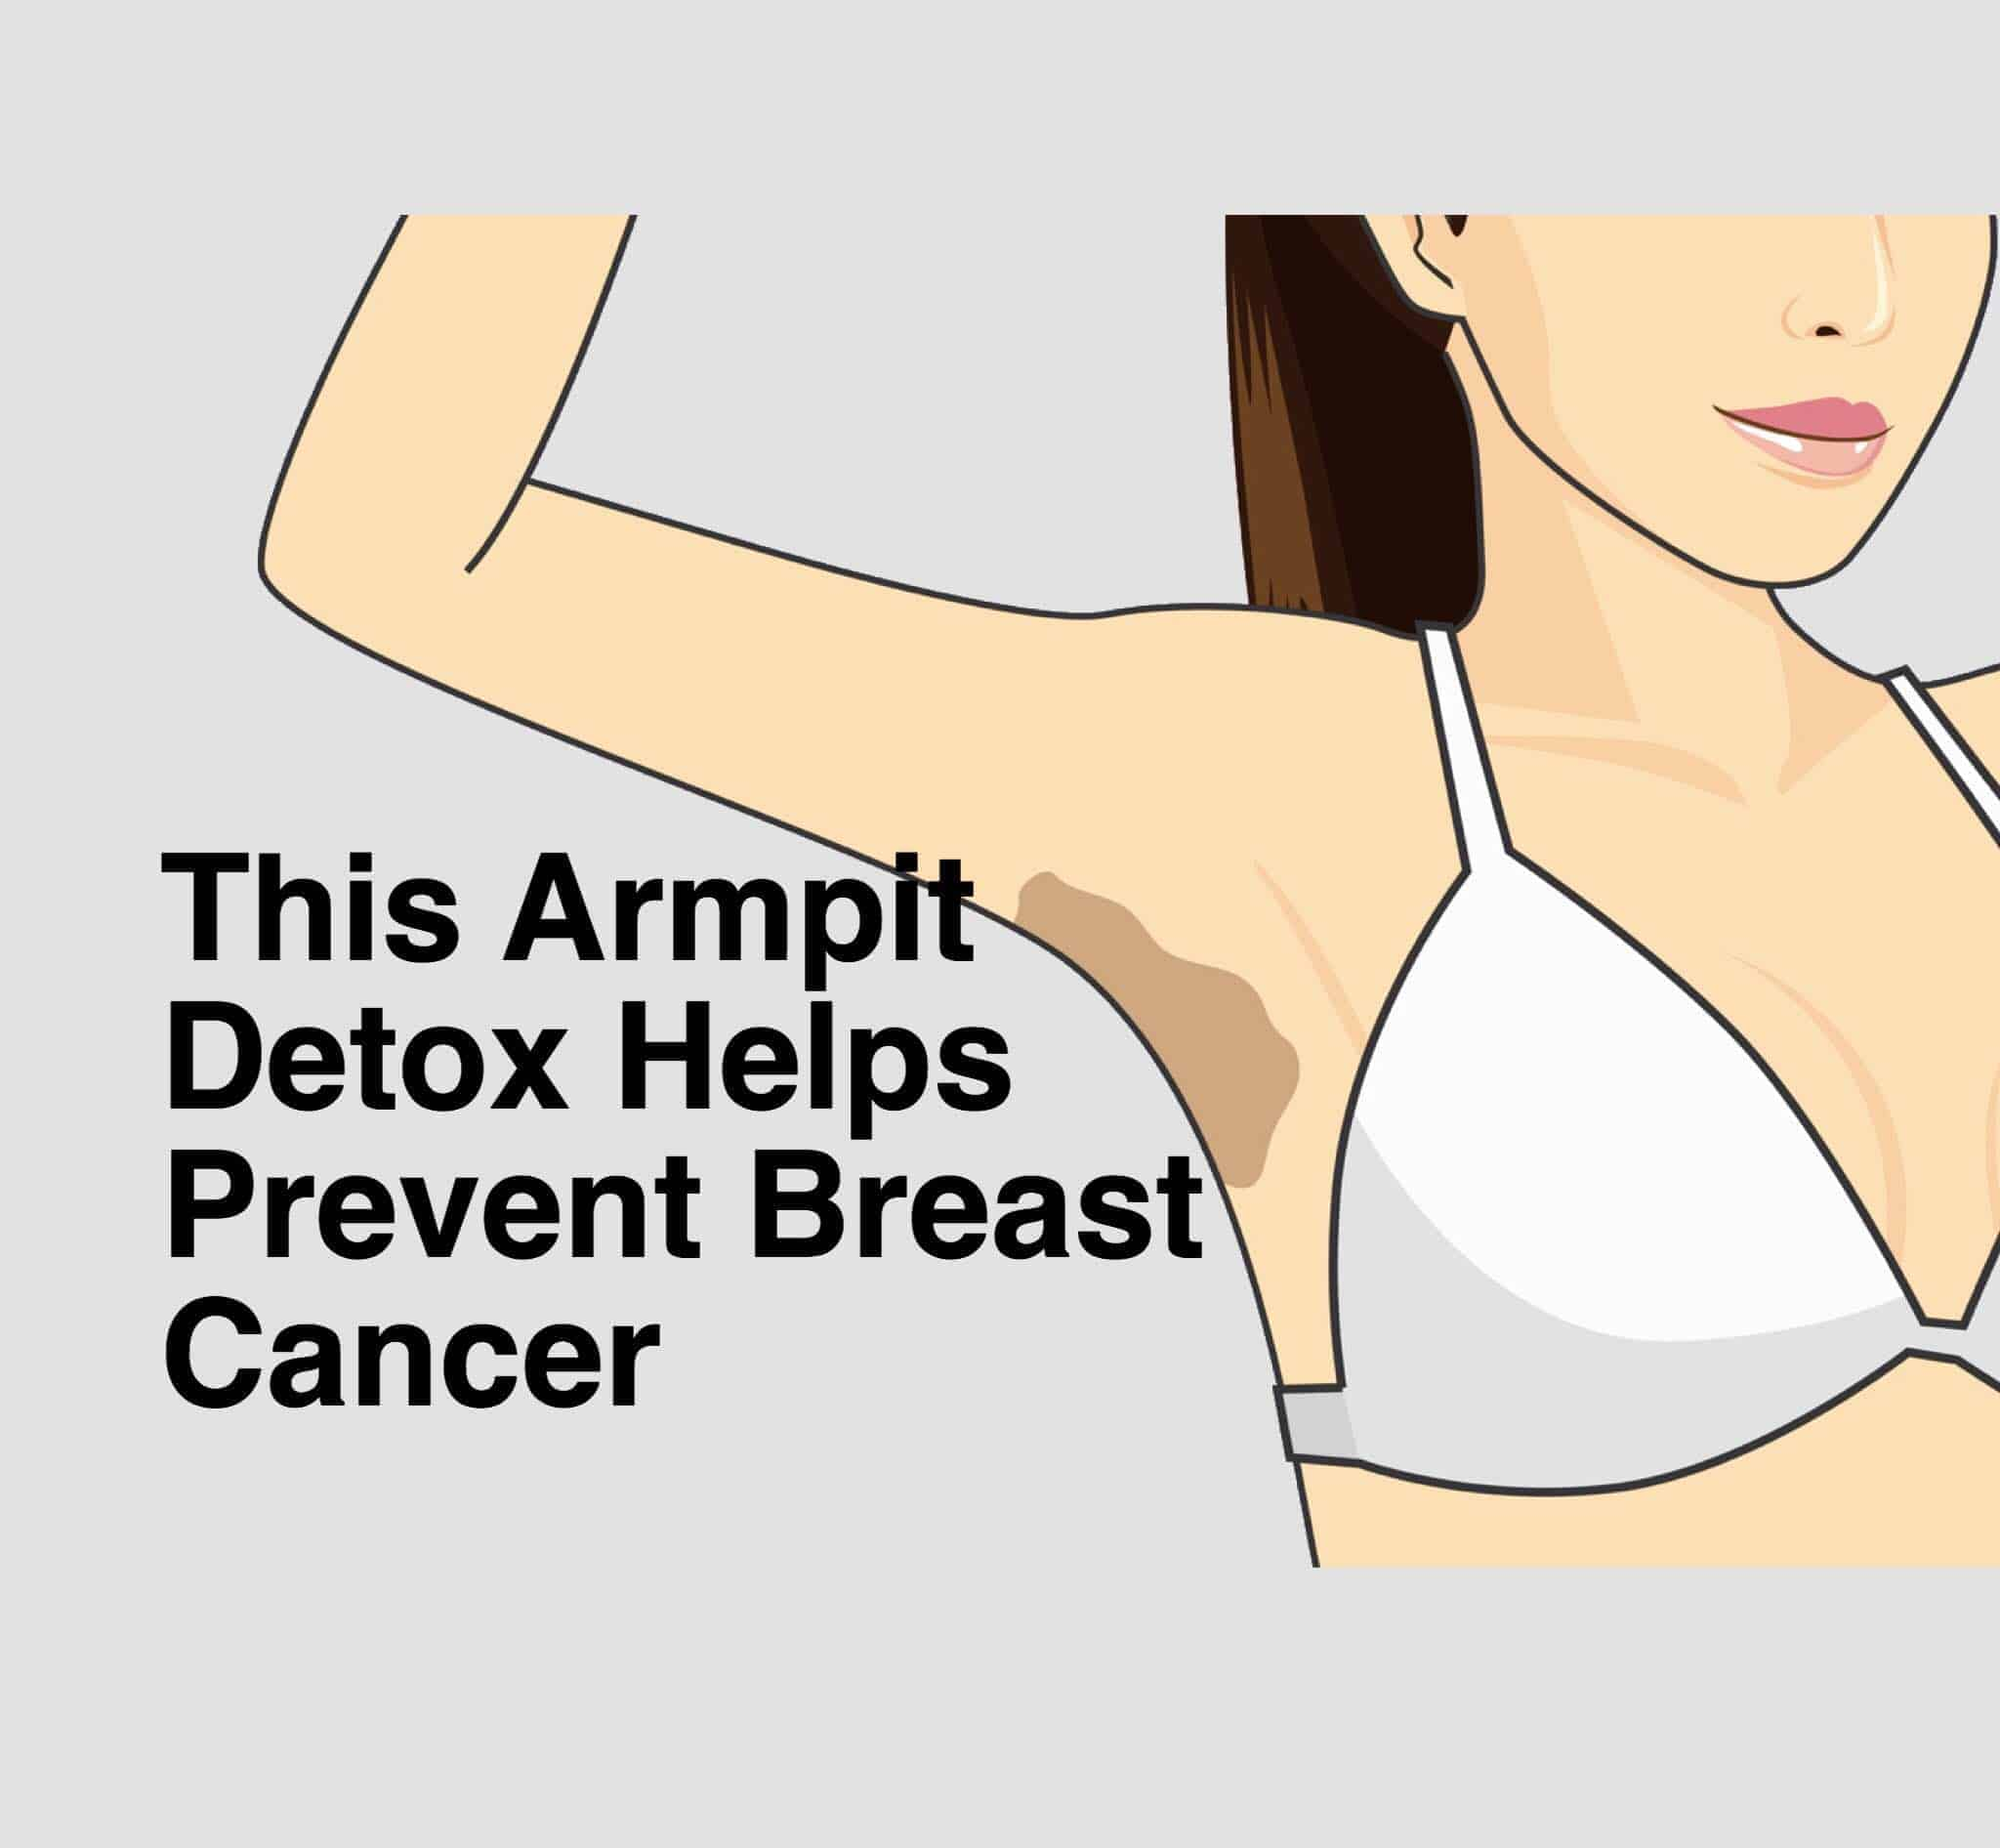 This Armpit Detox Helps Prevent Breast Cancer-1067